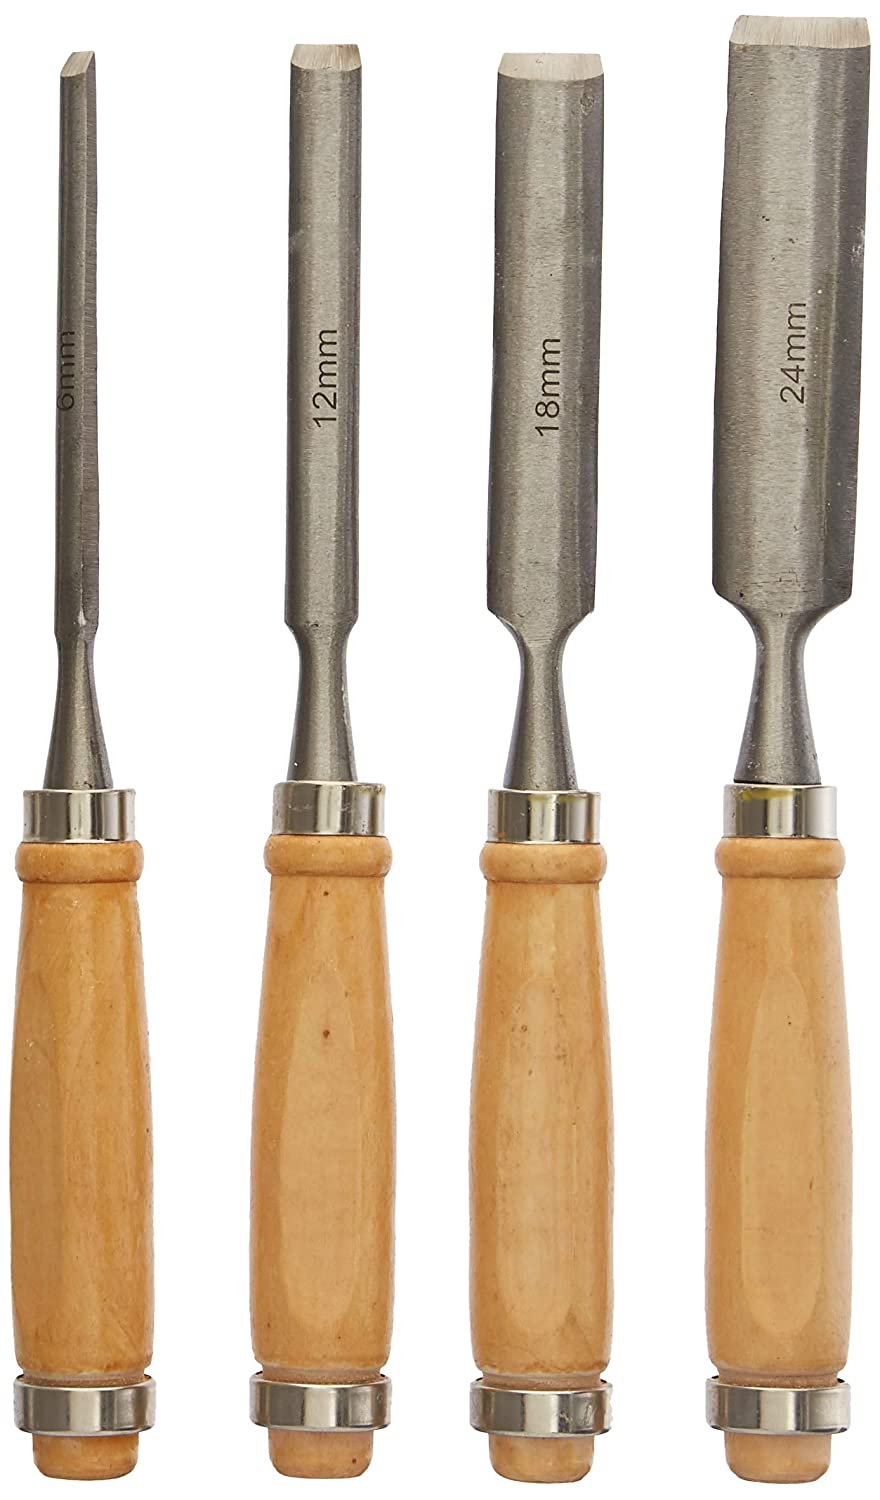 CNBTR Wood Color Carbon Steel Carving Firmer Gouge Wood Chisel Set DIY Woodworking Handle Carpentry Tools Pack of 4 FBA_CNBTR2412